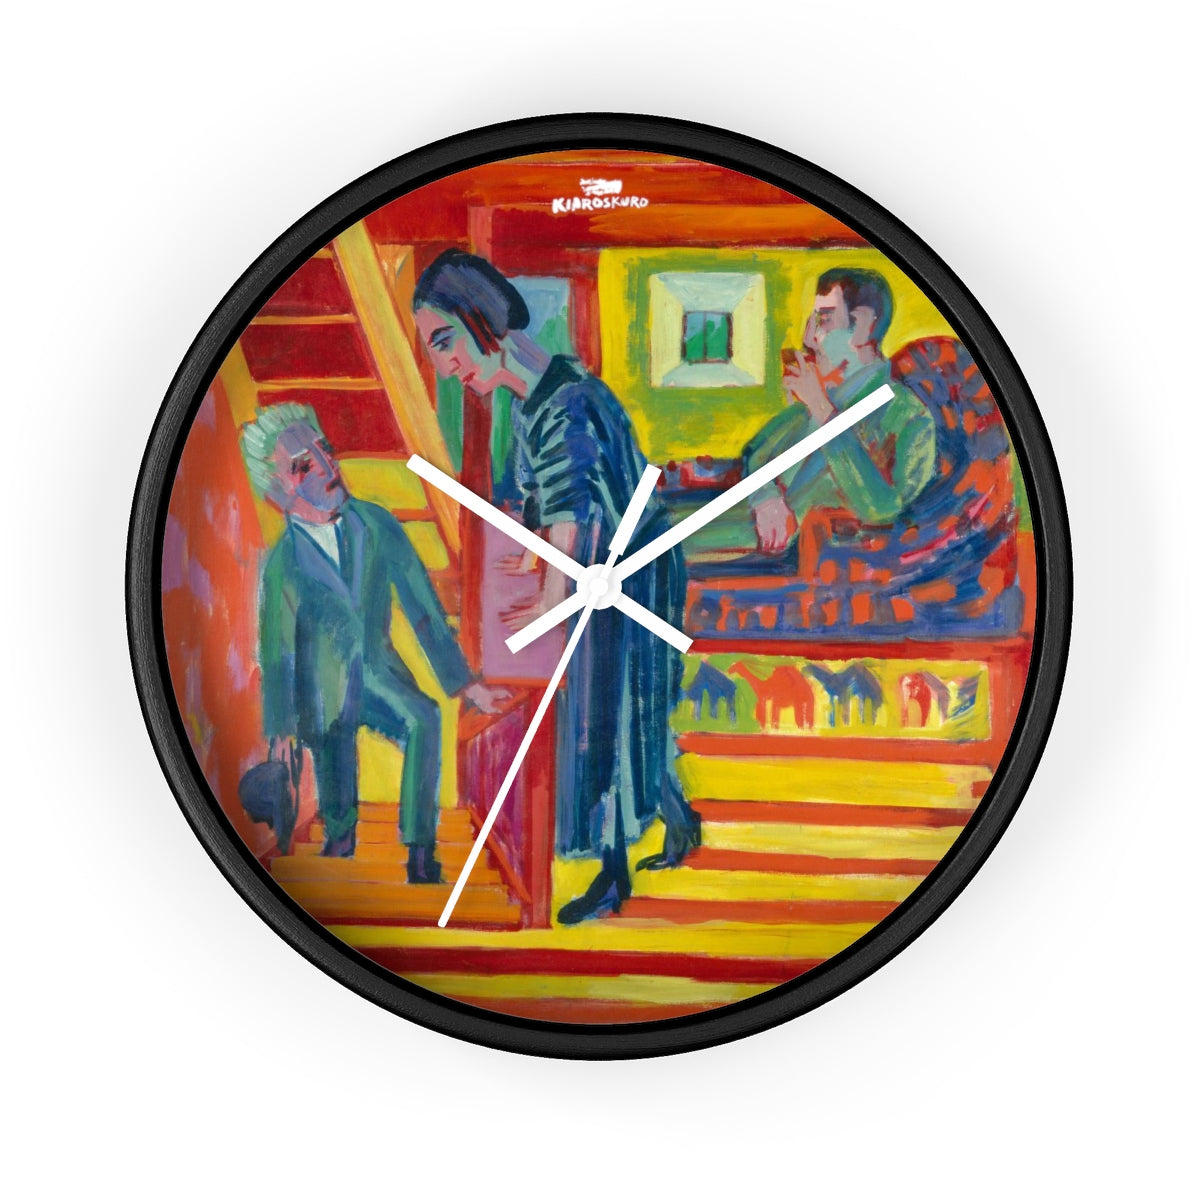 The Visit [1922] Wall clock - Kiaroskuro Kiaroskuro Decor- Canvas Prints, Home Décor & Fashion